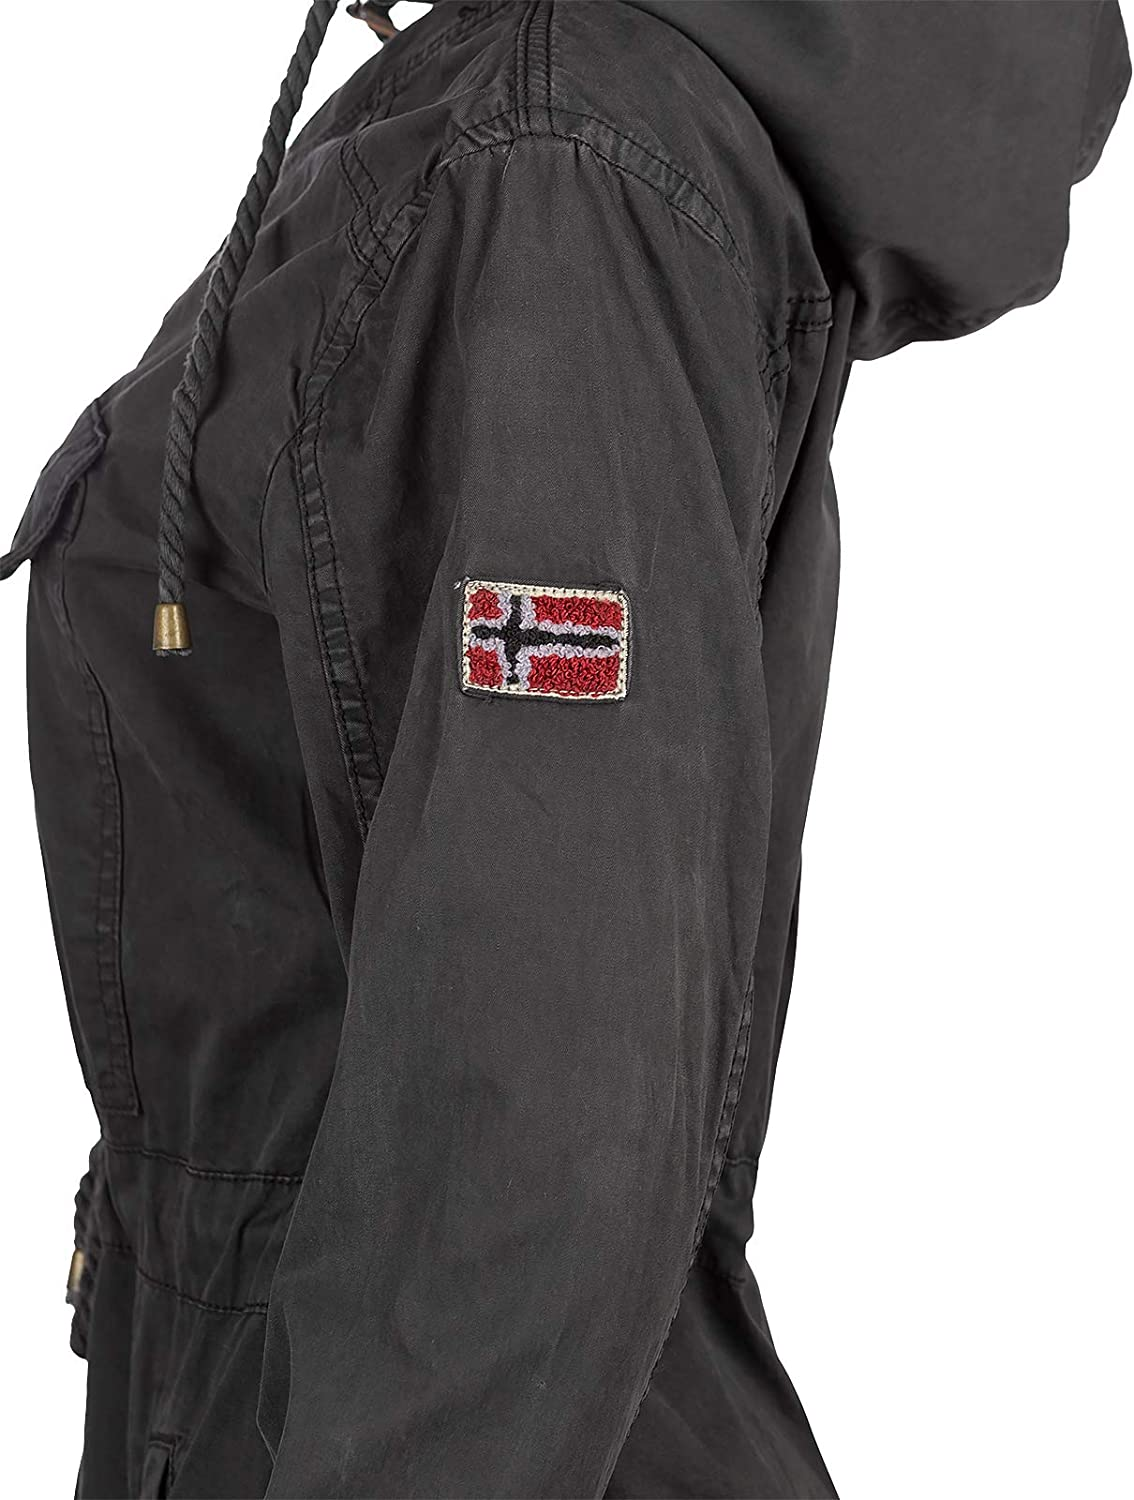 Geographical Norway Damen Windbreaker Regenjacke Schwarz - 01